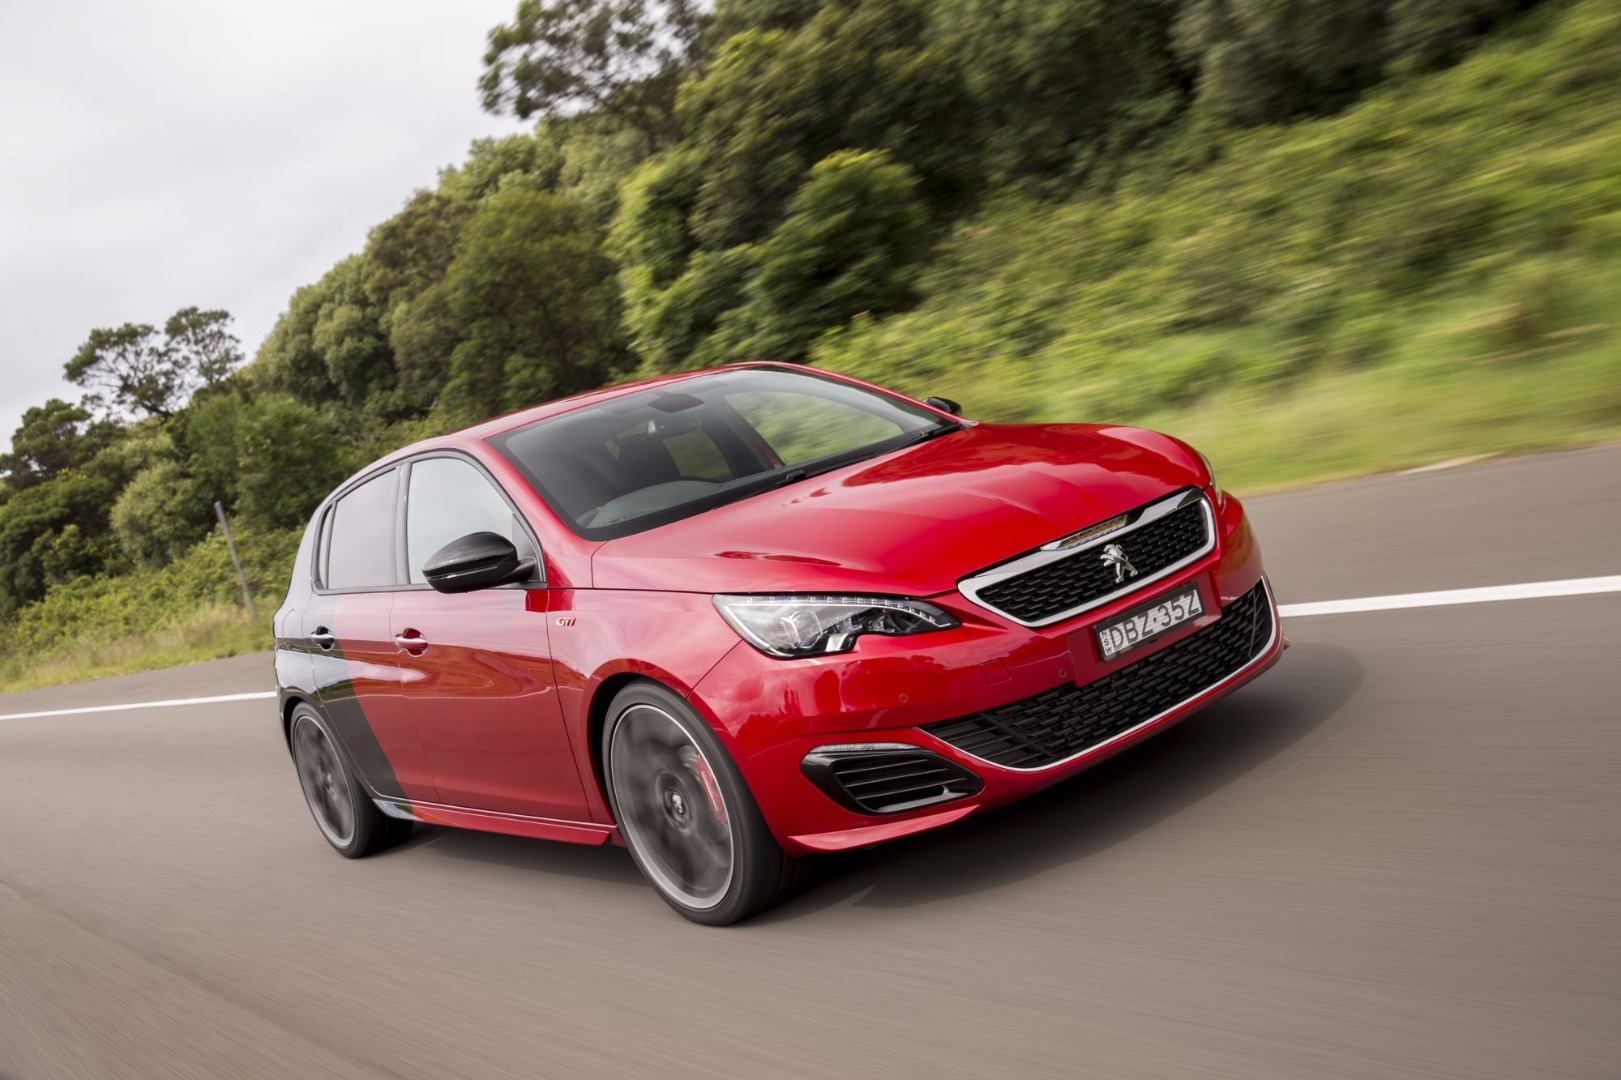 Review 2017 Peugeot 308 Gti Review HD Wallpapers Download free images and photos [musssic.tk]